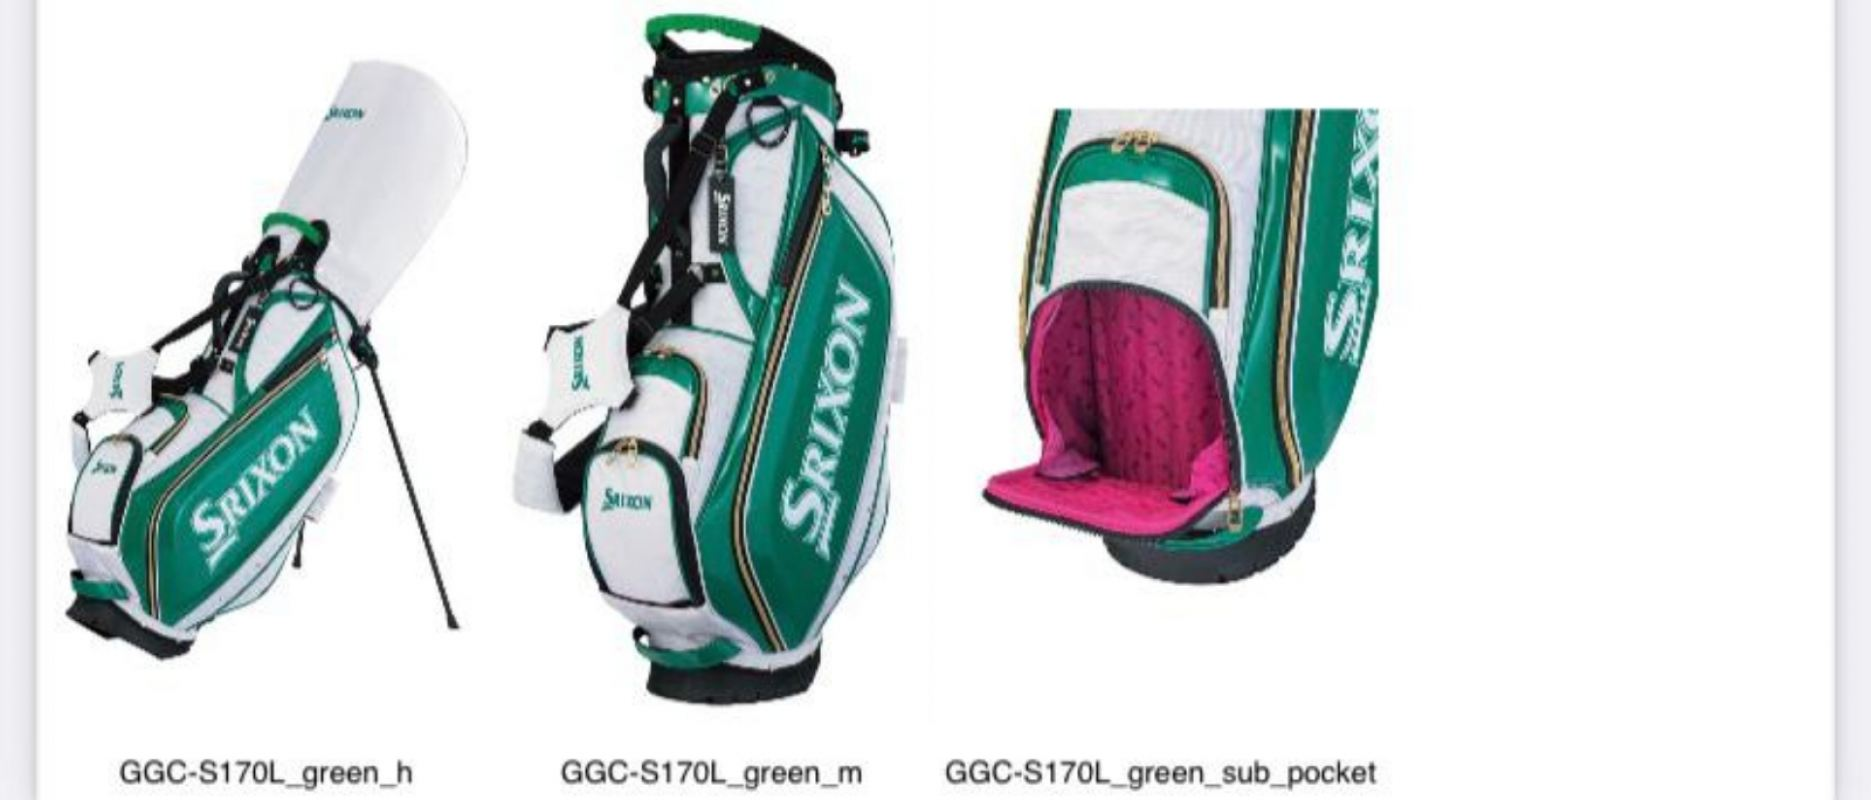 Srixon Tour Stand Limited Edition 2021 Masters Series